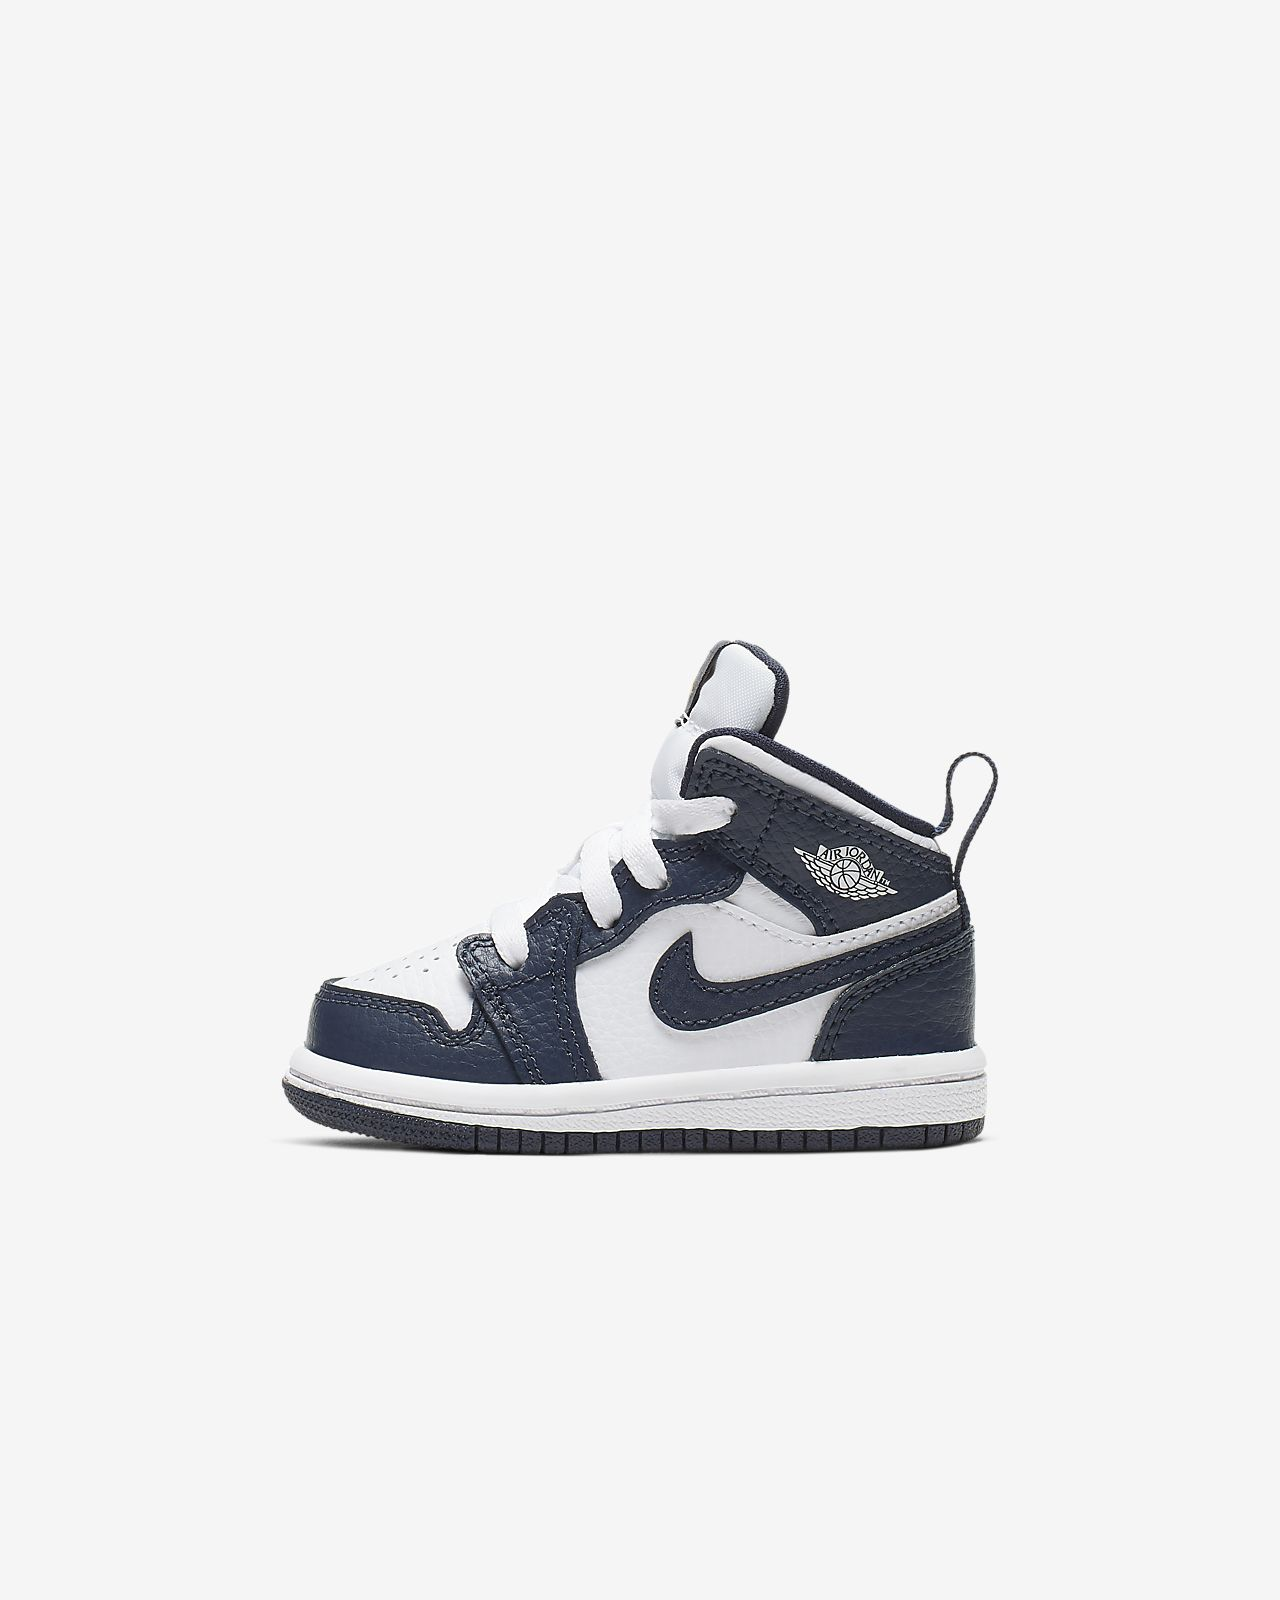 outlet store c3103 32504 Air Jordan 1 Mid Infant/Toddler Shoe